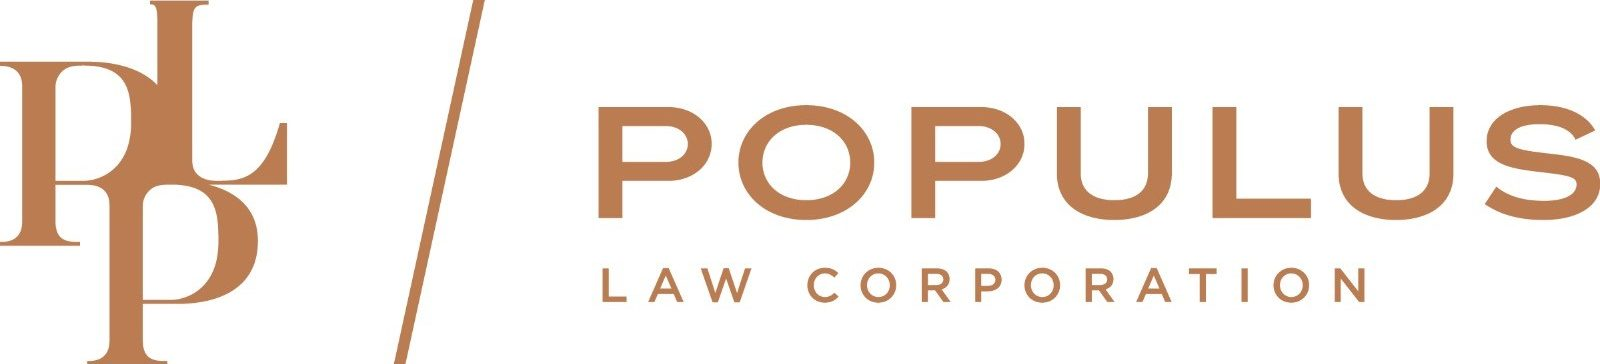 POPULUS LAW CORPORATION